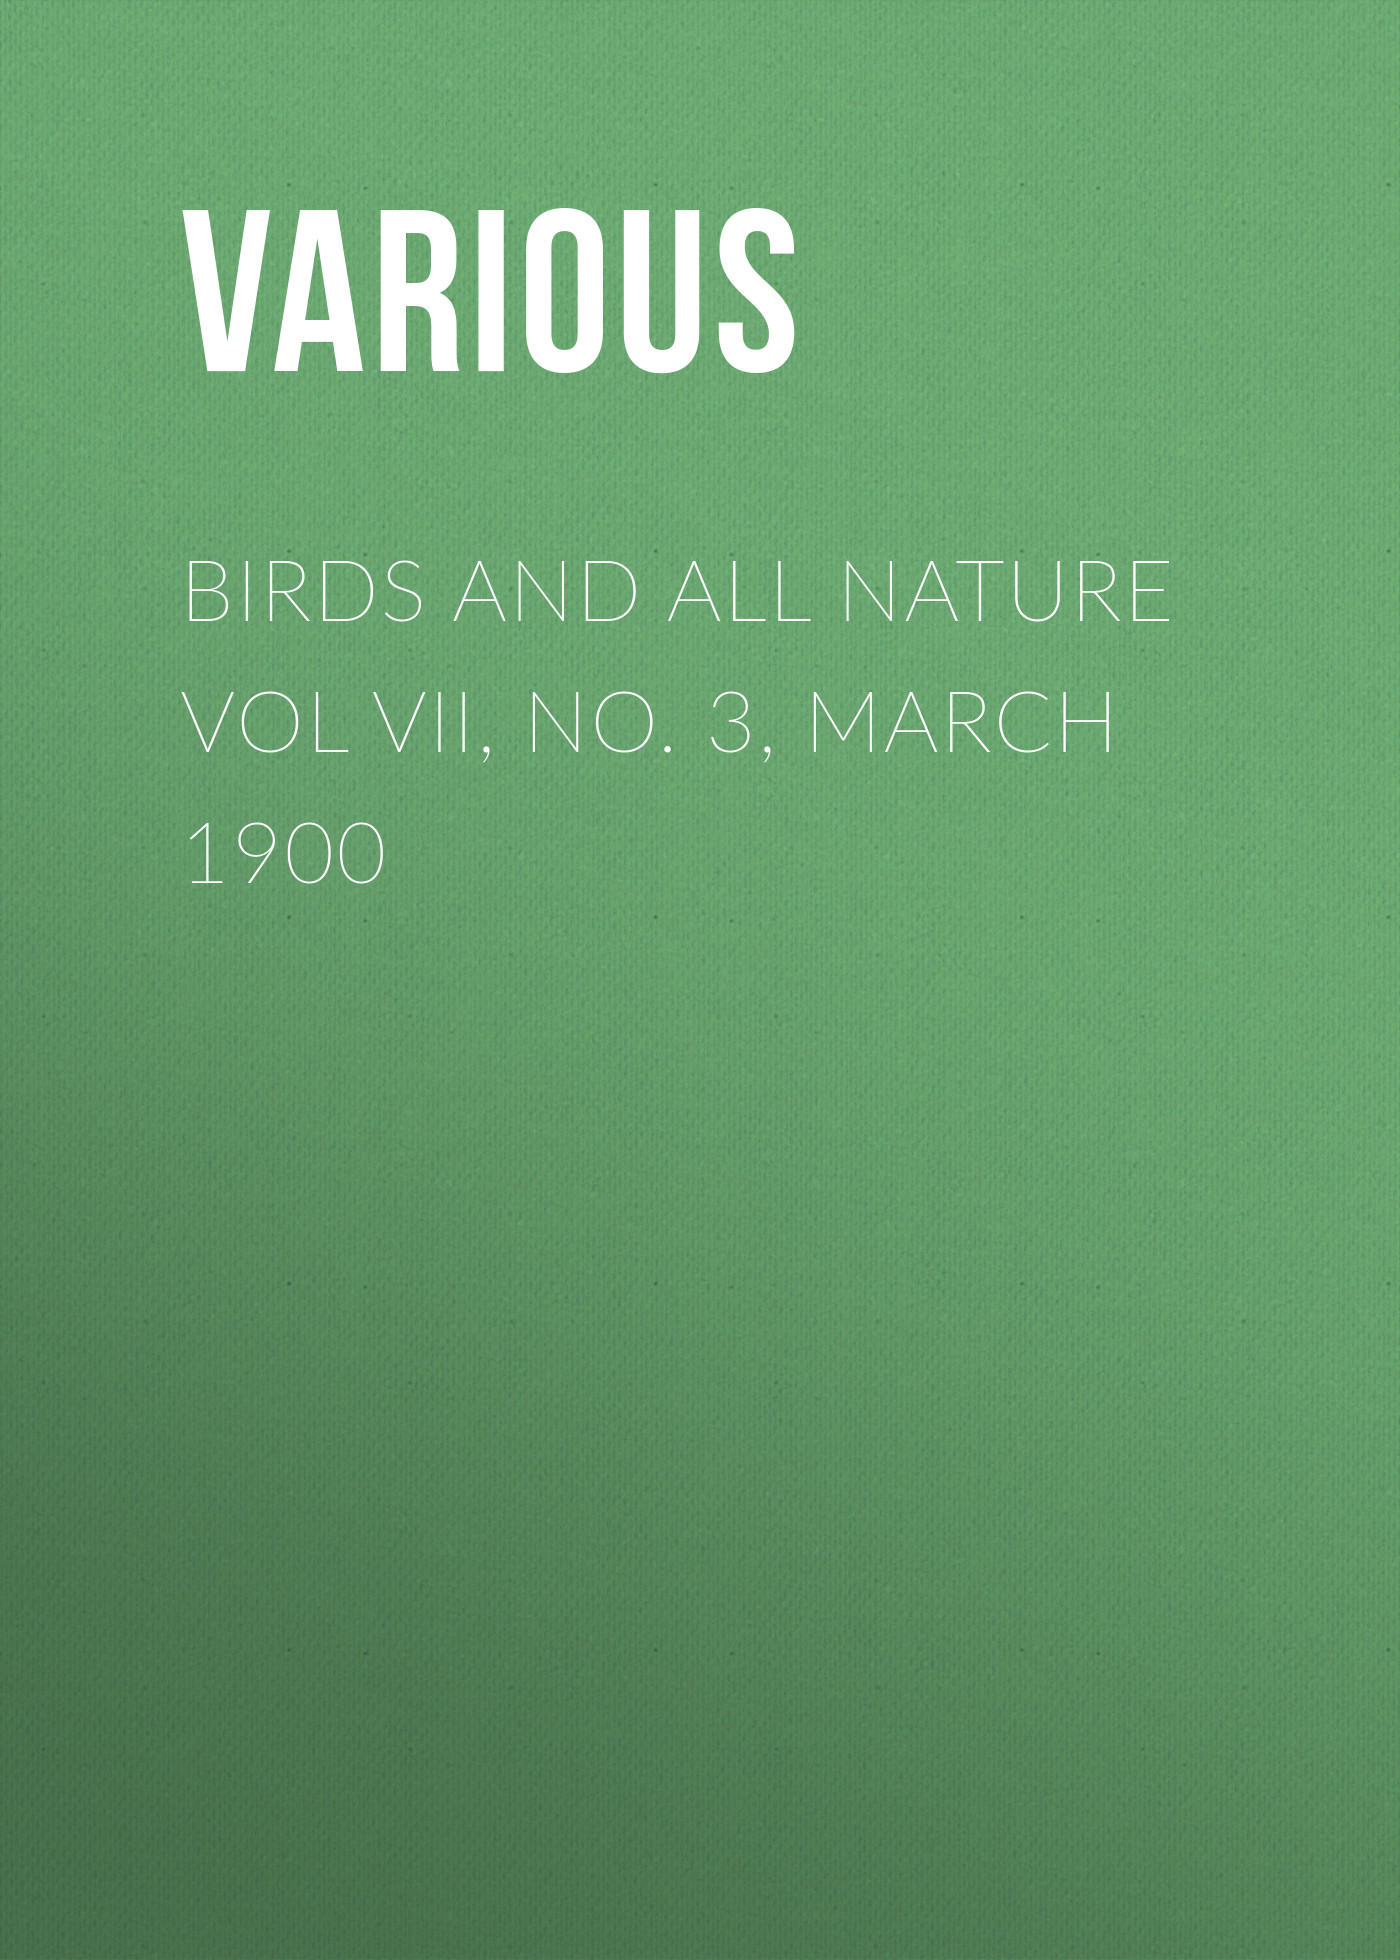 все цены на Various Birds and all Nature Vol VII, No. 3, March 1900